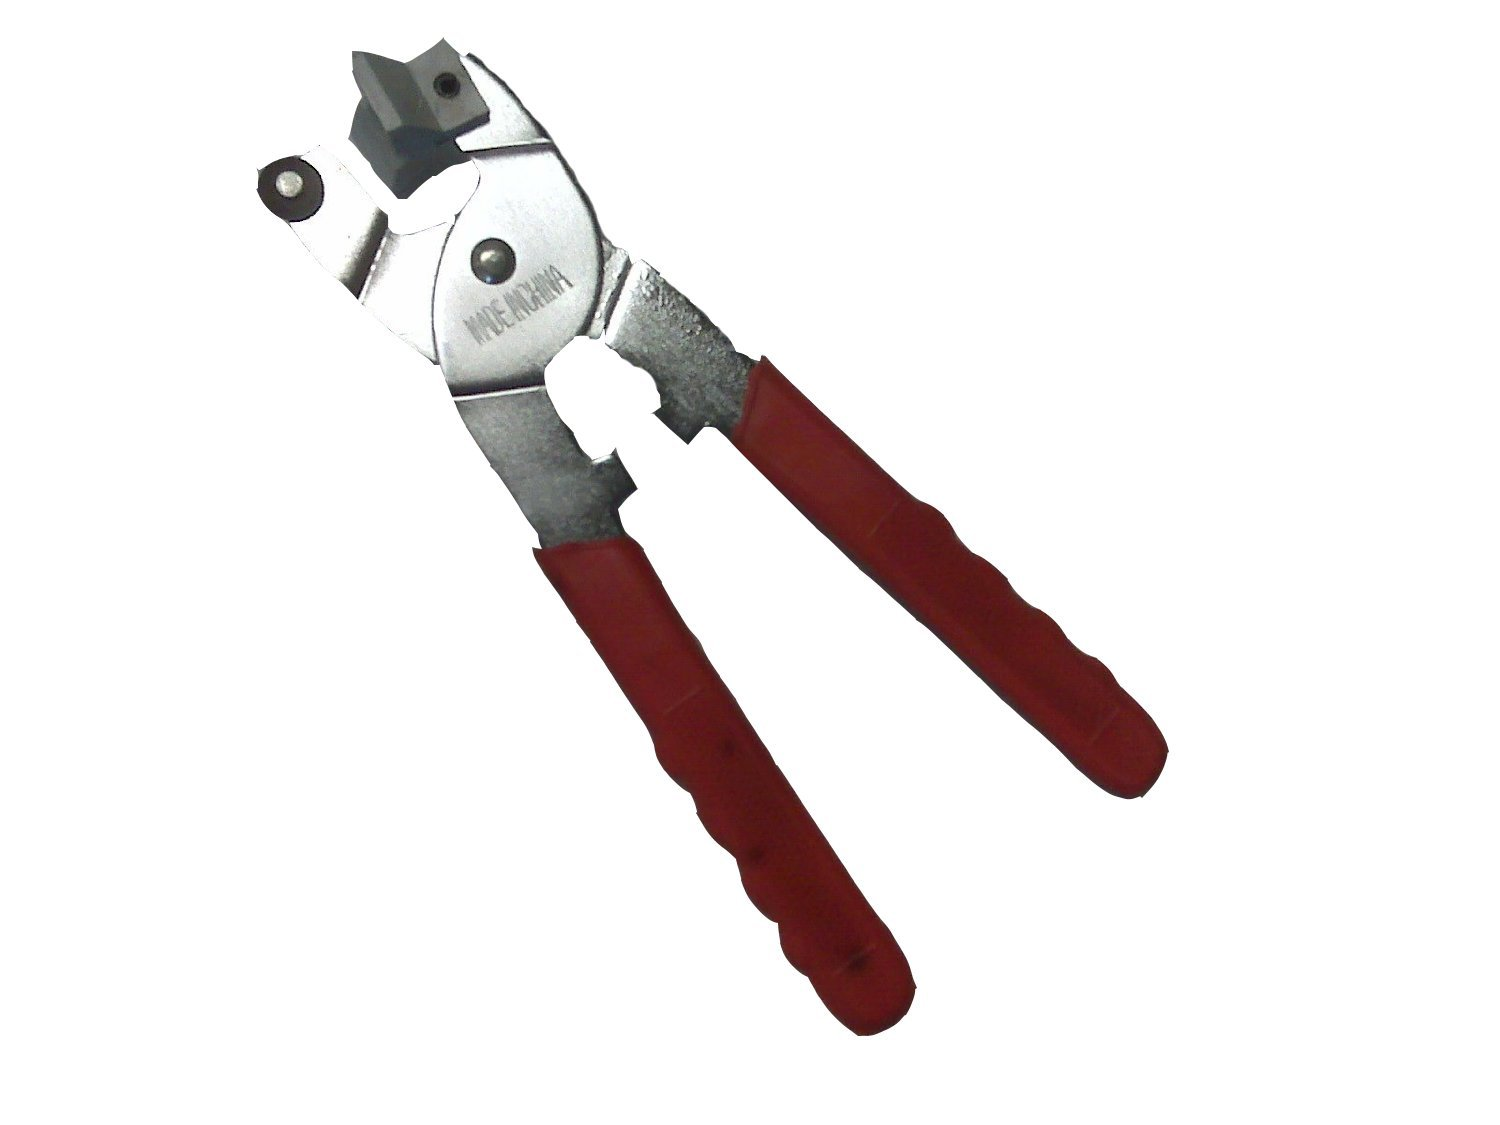 TBC Glass and Tile Cutter: Tile/Glass Cutting Pliers with Tungsten Carbide Cutting Wheel: Simply Score & Squeeze to Break